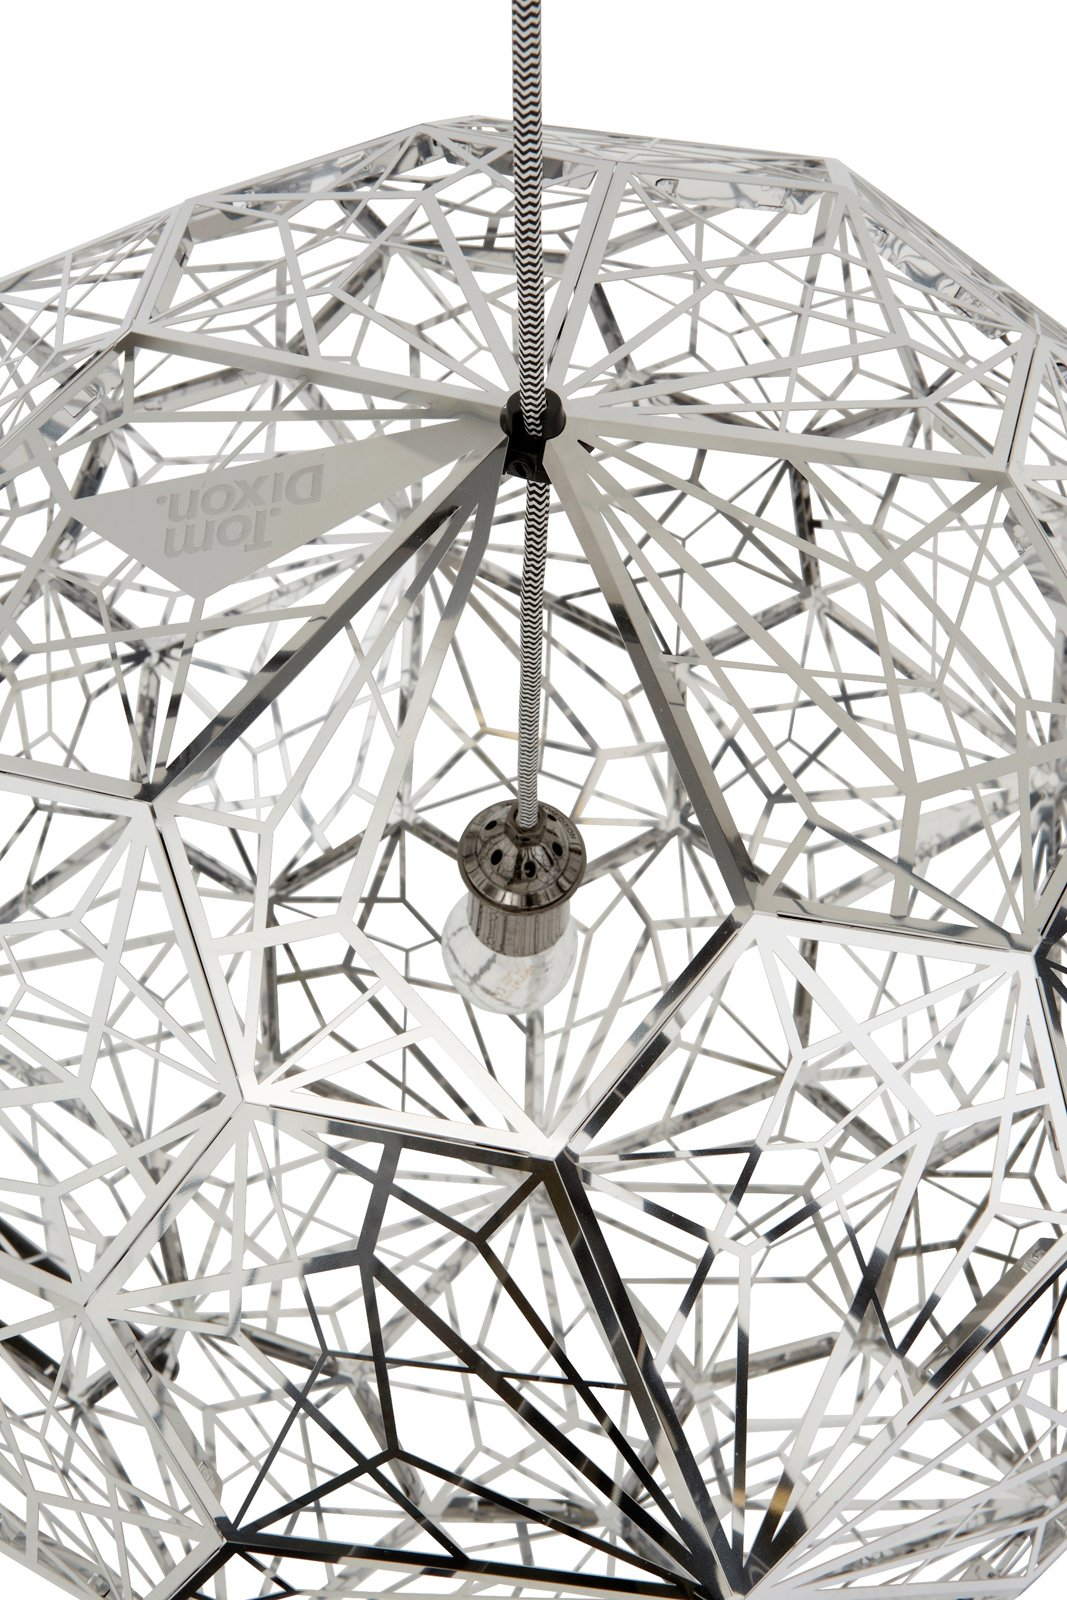 Photo 1 of 2 in Tom Dixon Debuts a New Light at Stockholm Design Week